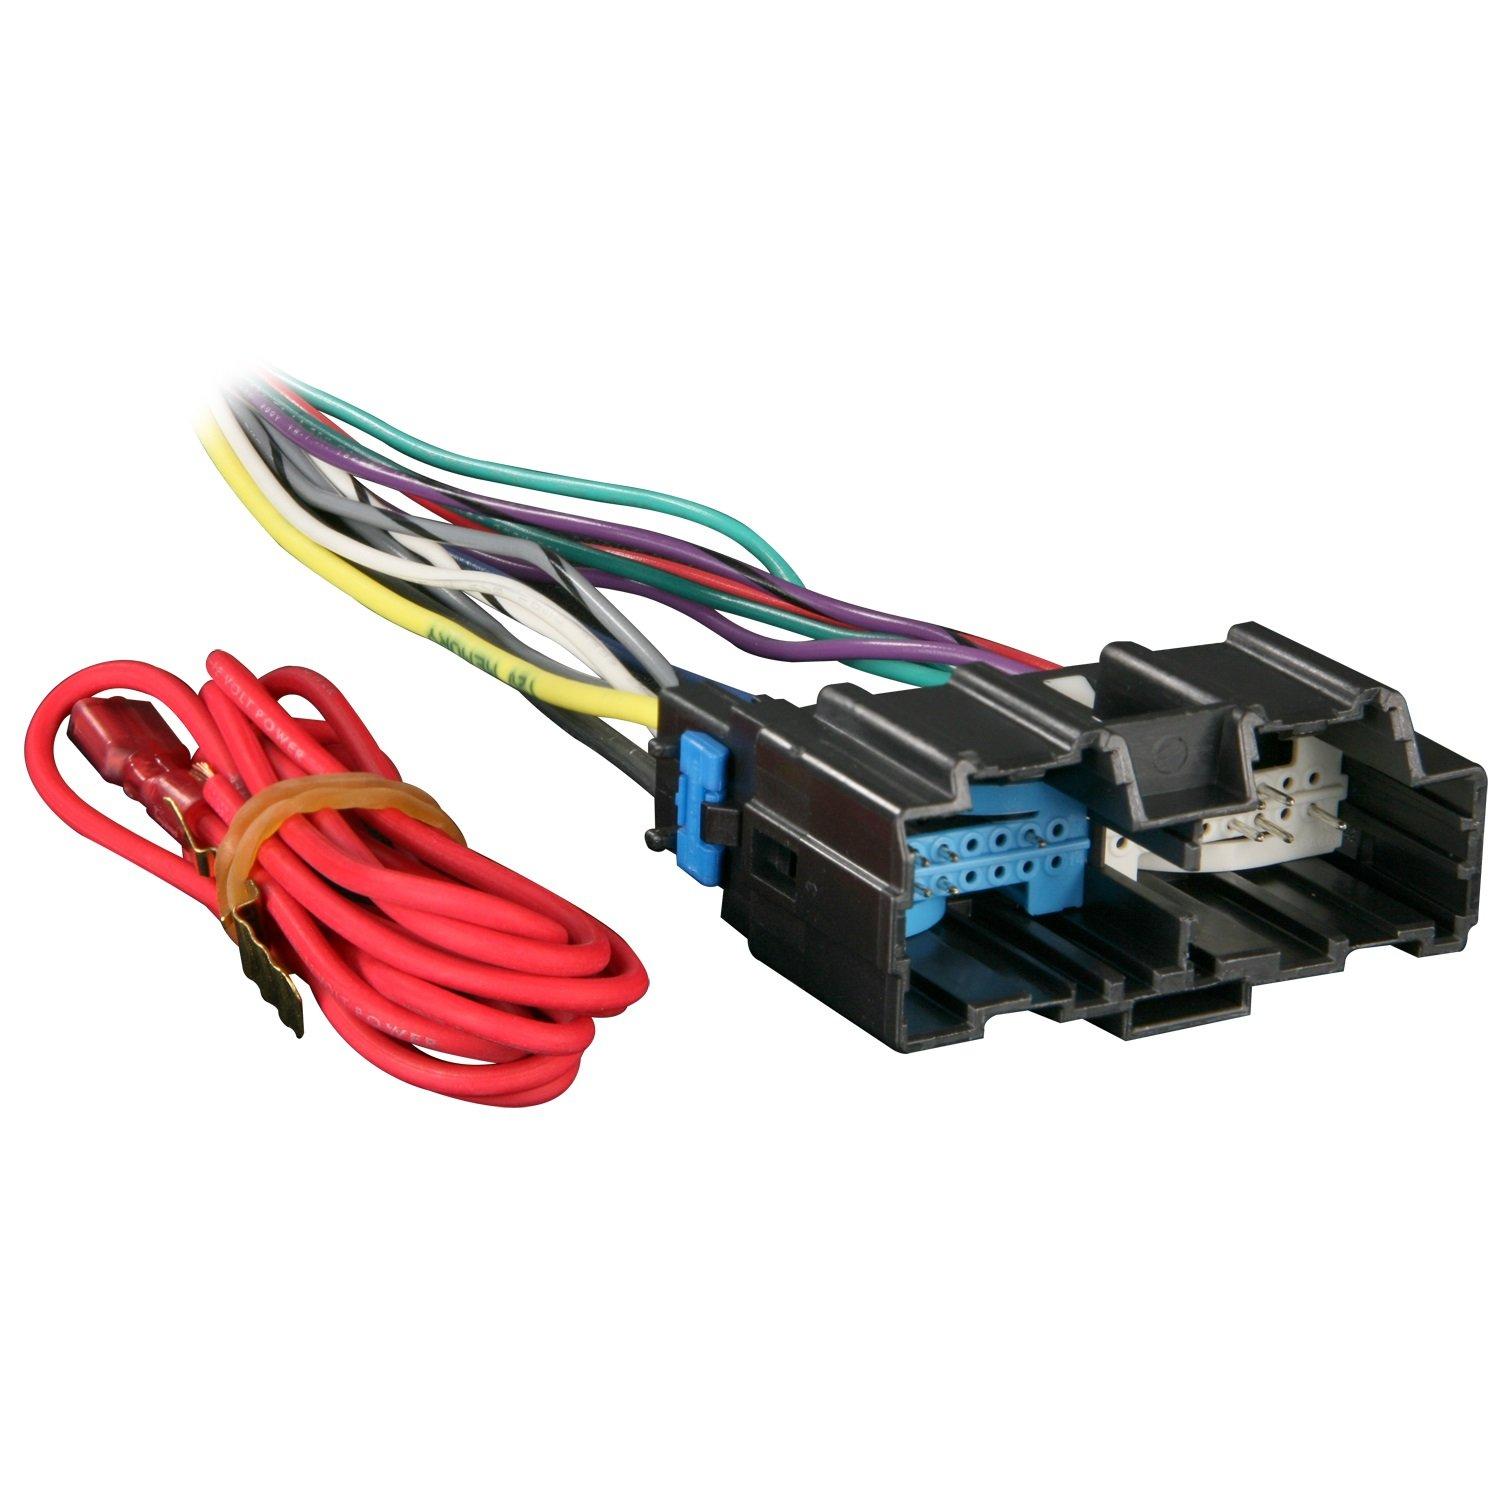 71ZzH dyg7L._SL1500_ amazon com metra 70 2105 radio wiring harness for impala monte 2006 monte carlo stereo wiring diagram at creativeand.co